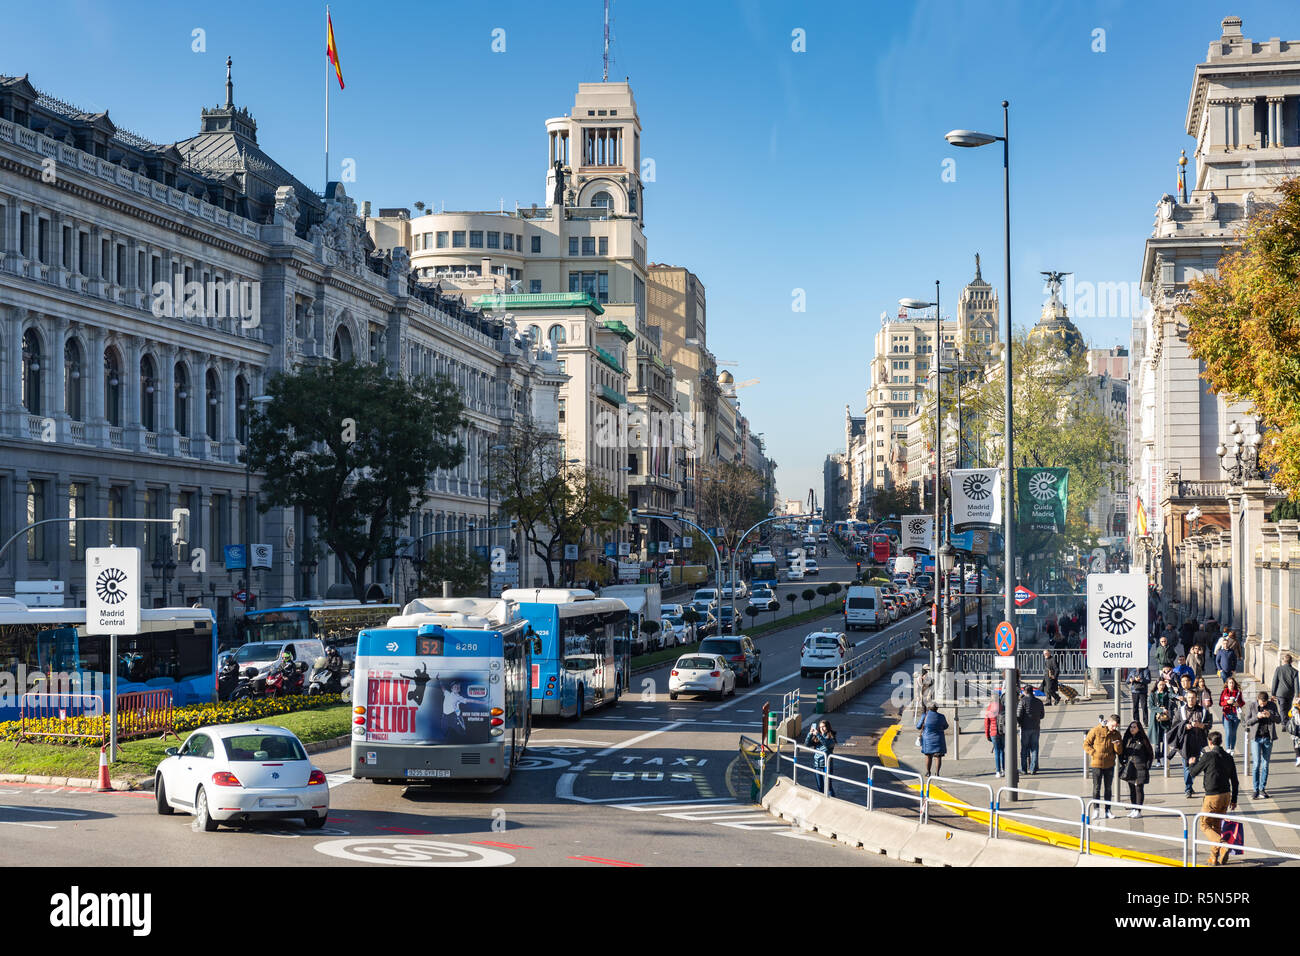 Acala stock photos acala stock images alamy for Calle del prado 9 madrid espana